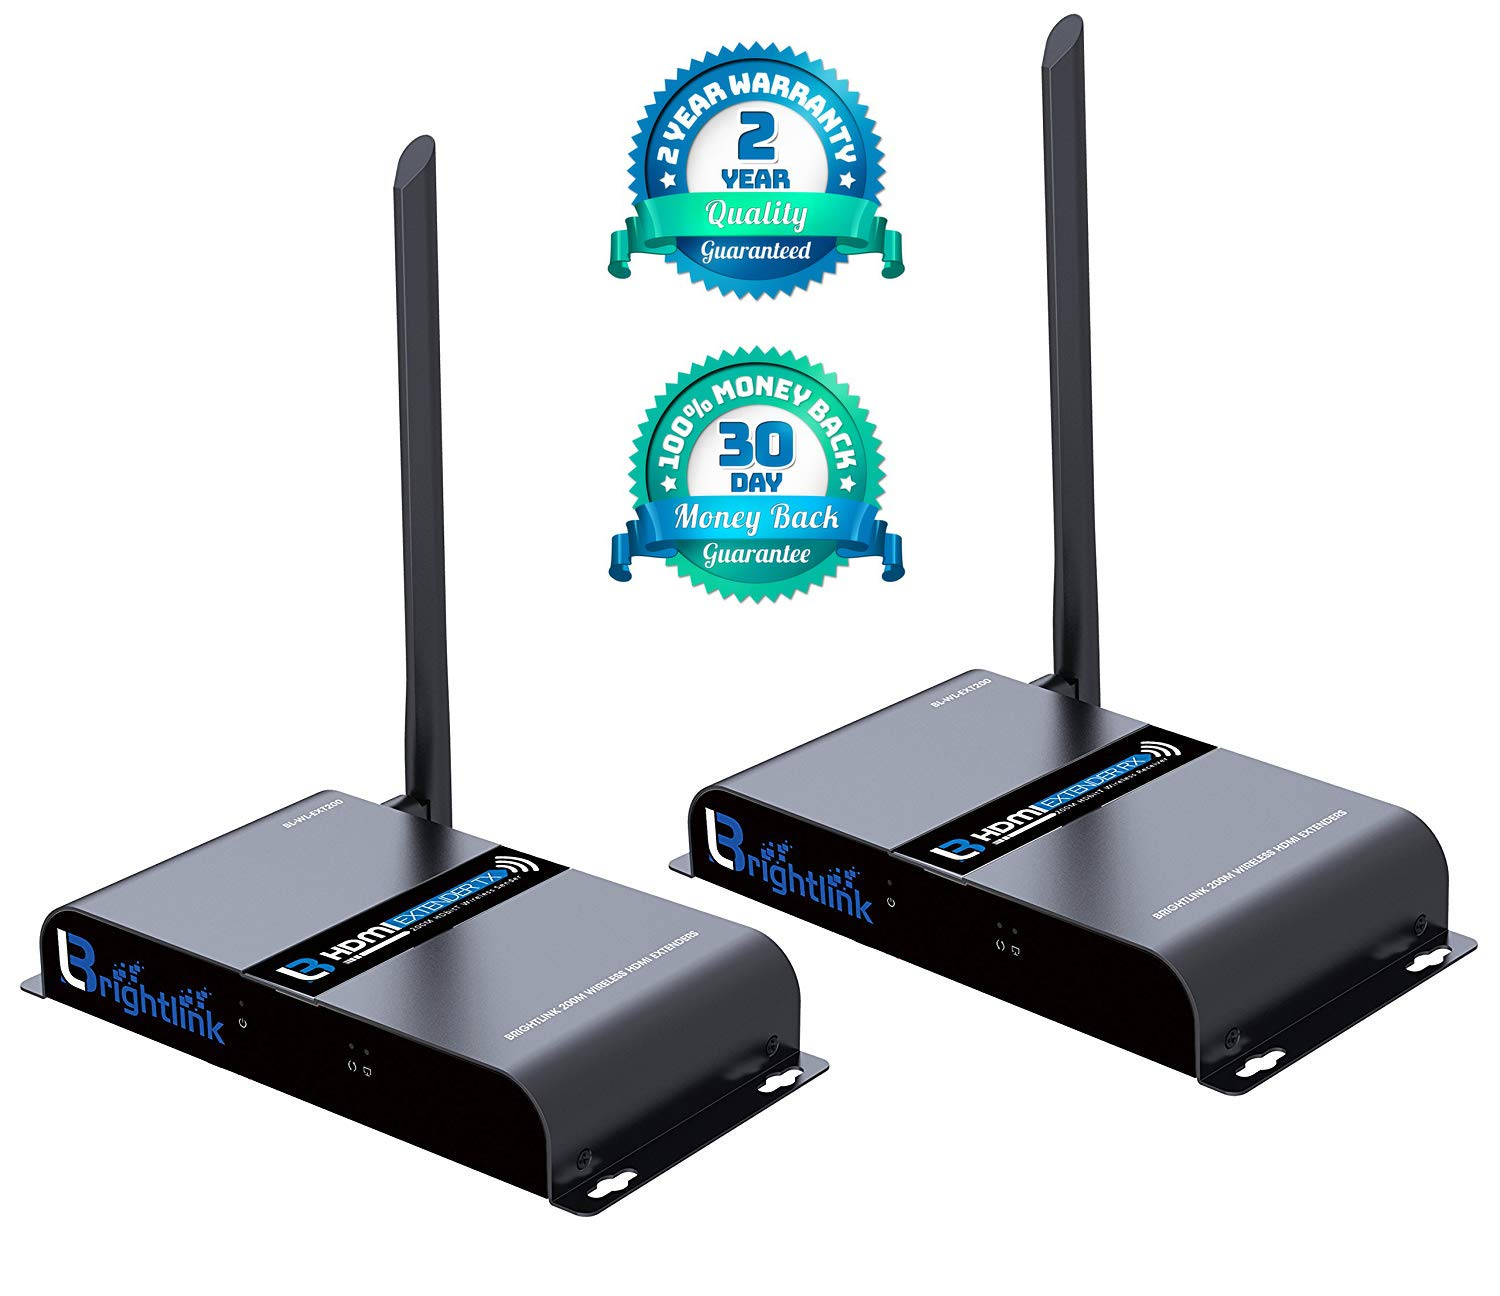 Brightlink New 200 M./ 656 Ft. HDMI Wireless Extender with Full HD 1080P @60Hz, Wide Band IR Passback & 5GHz Low Interference Frequency Range (Model # BL-WL-EXT200)